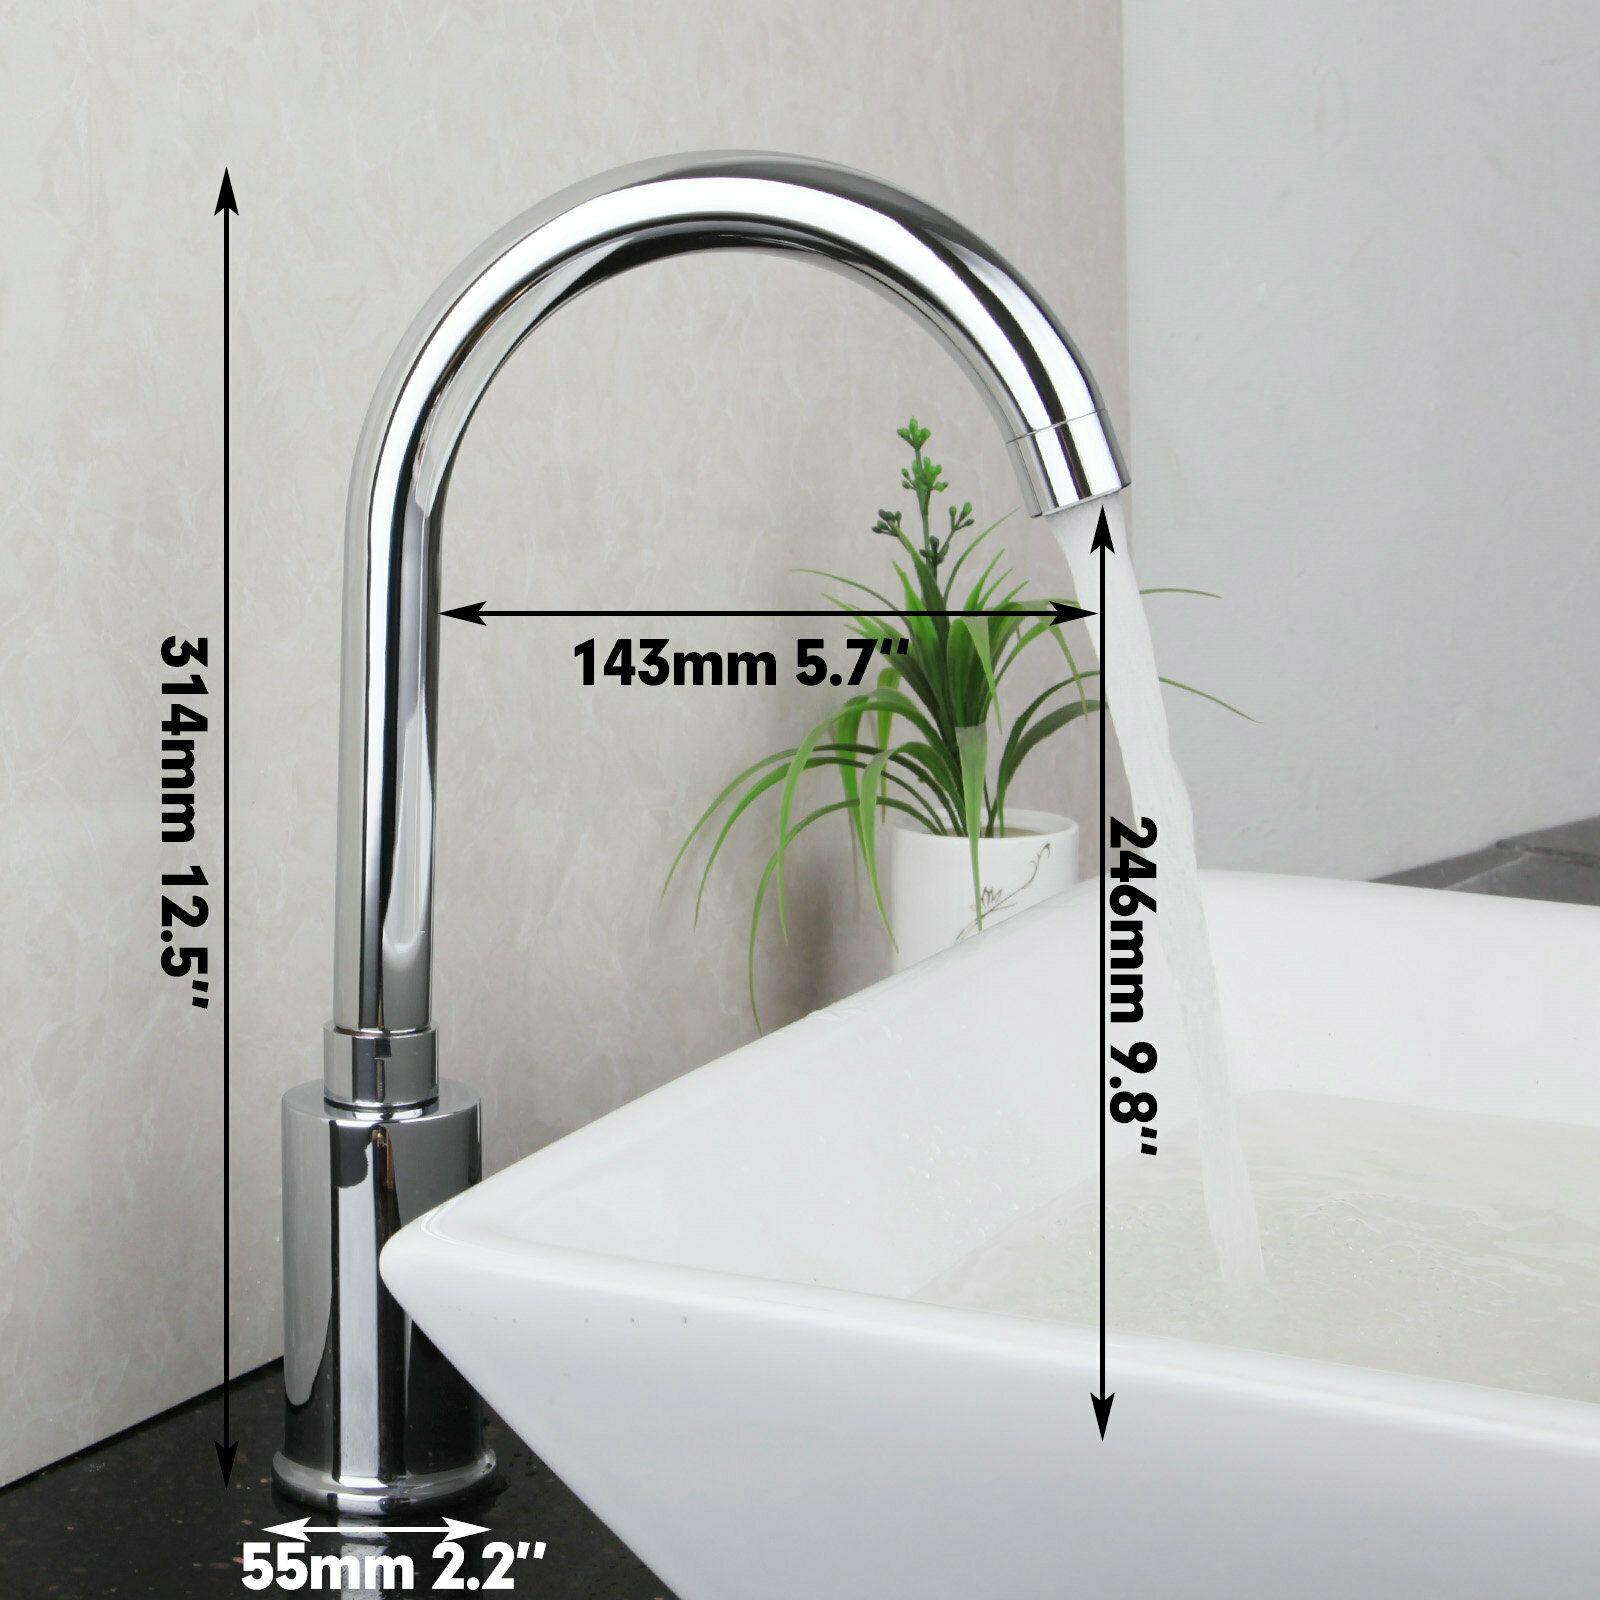 Hands Free Automatic Sensor Bathroom Basin Mixer Brass Faucet Hot ...